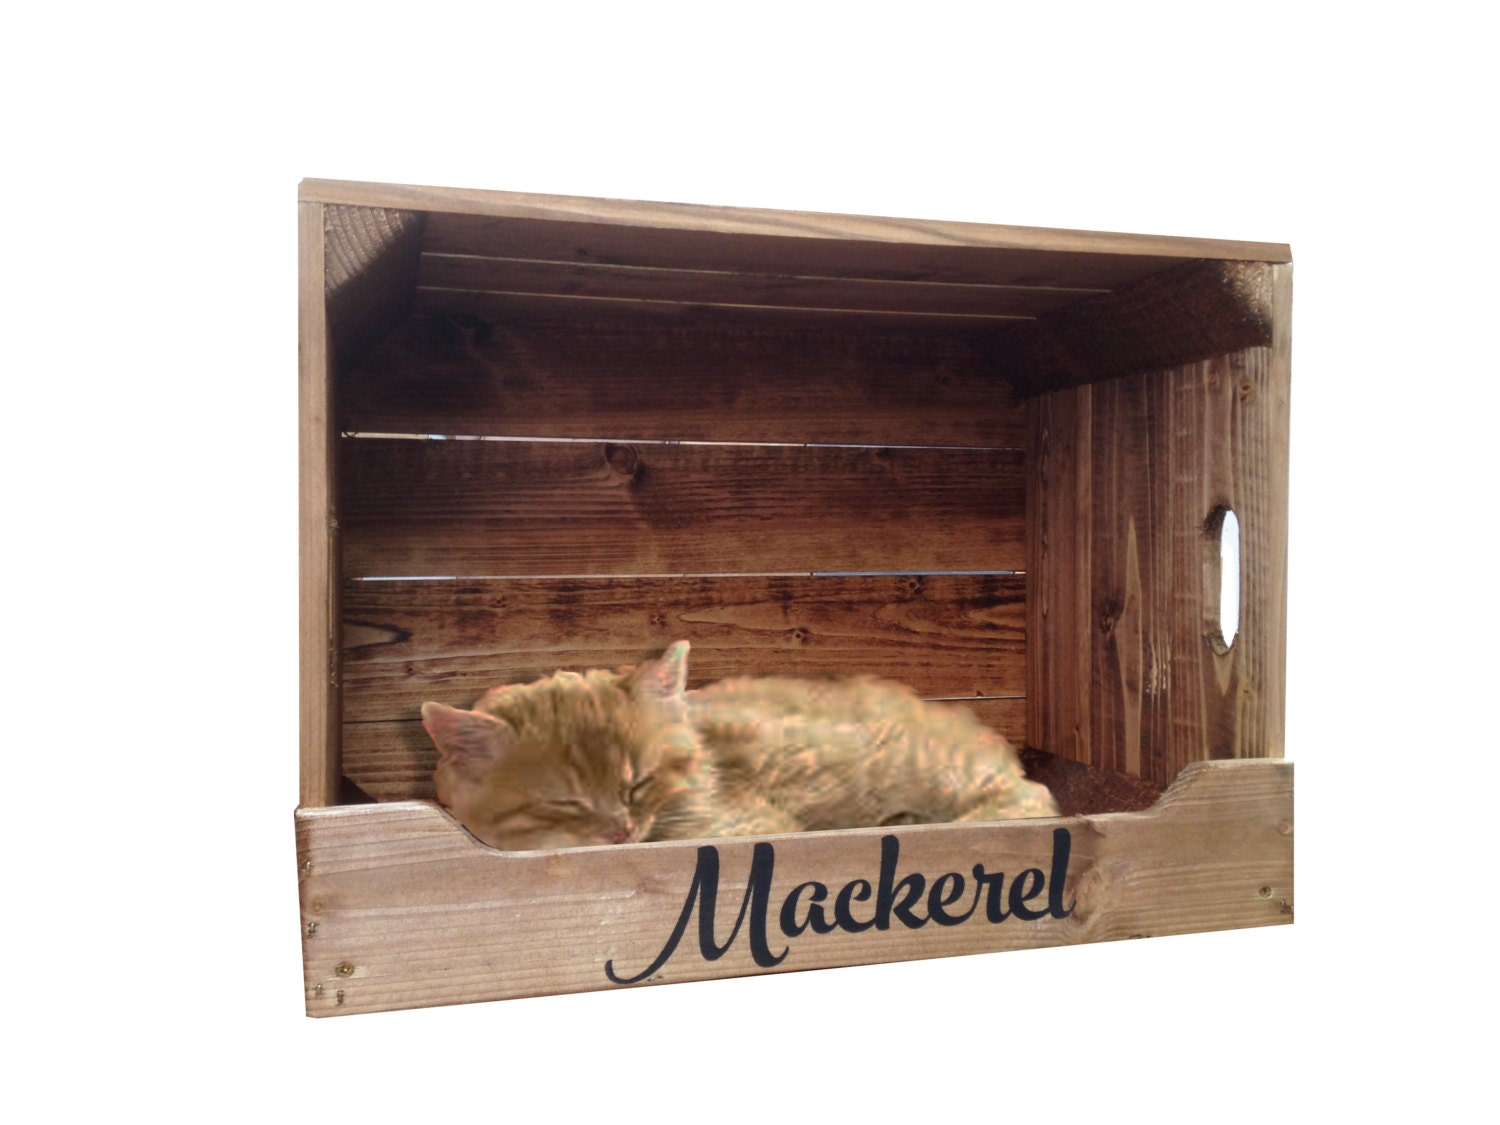 Very Impressive portraiture of Personalised Wooden Pet Bed Crate for Cats & Small by Crates4YouUK with #8E673D color and 1500x1125 pixels